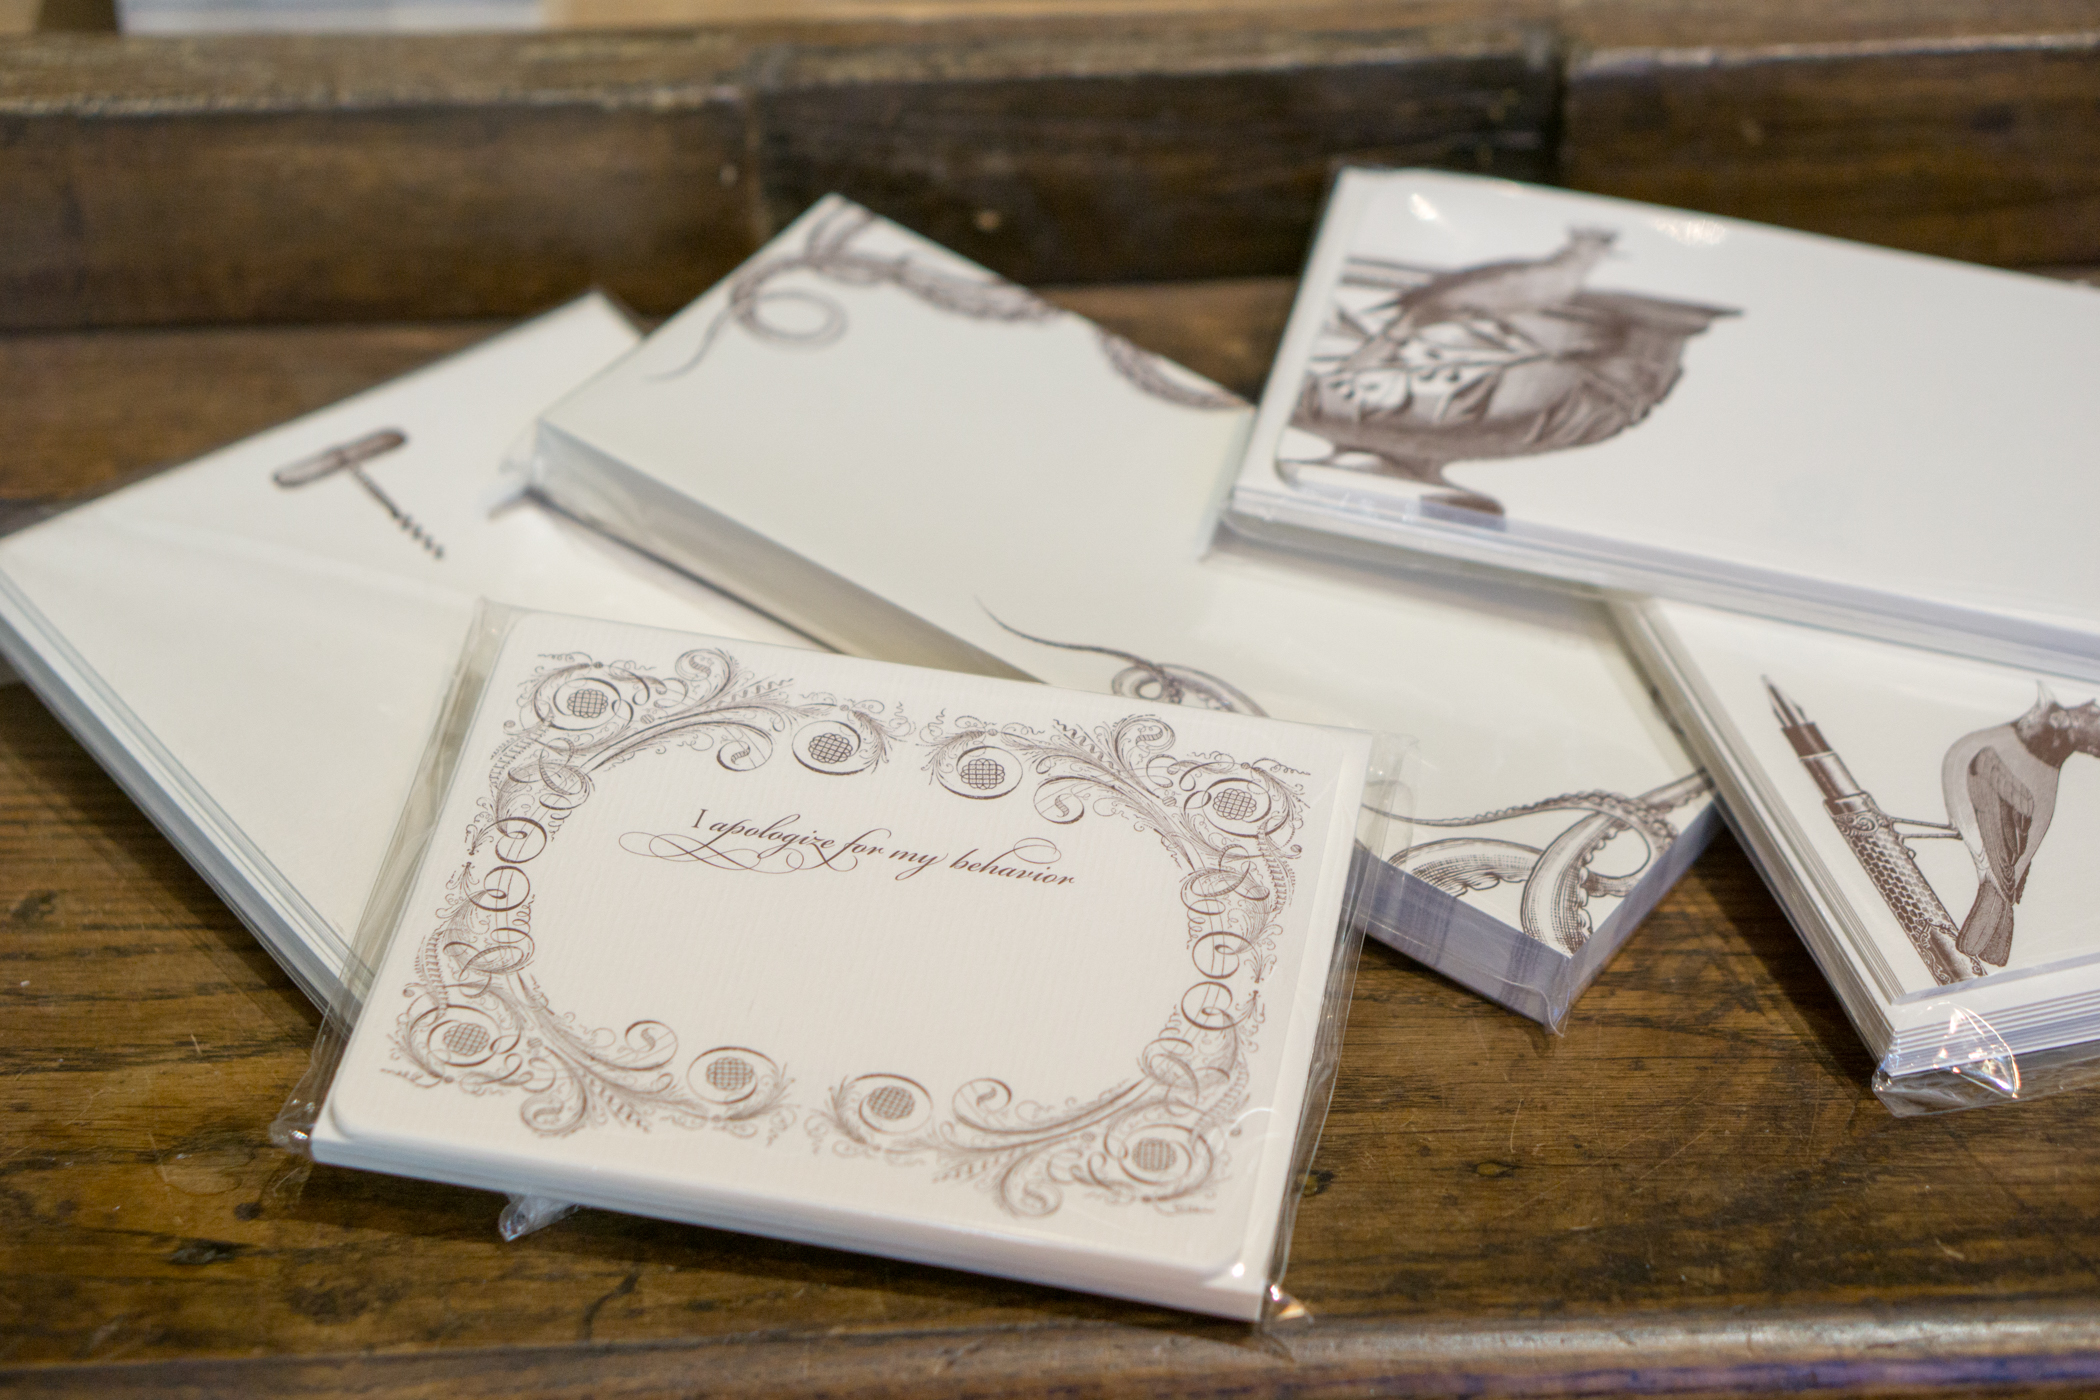 An image of graphic art paper tablets from the Alexa Pulitzer Paper Collection